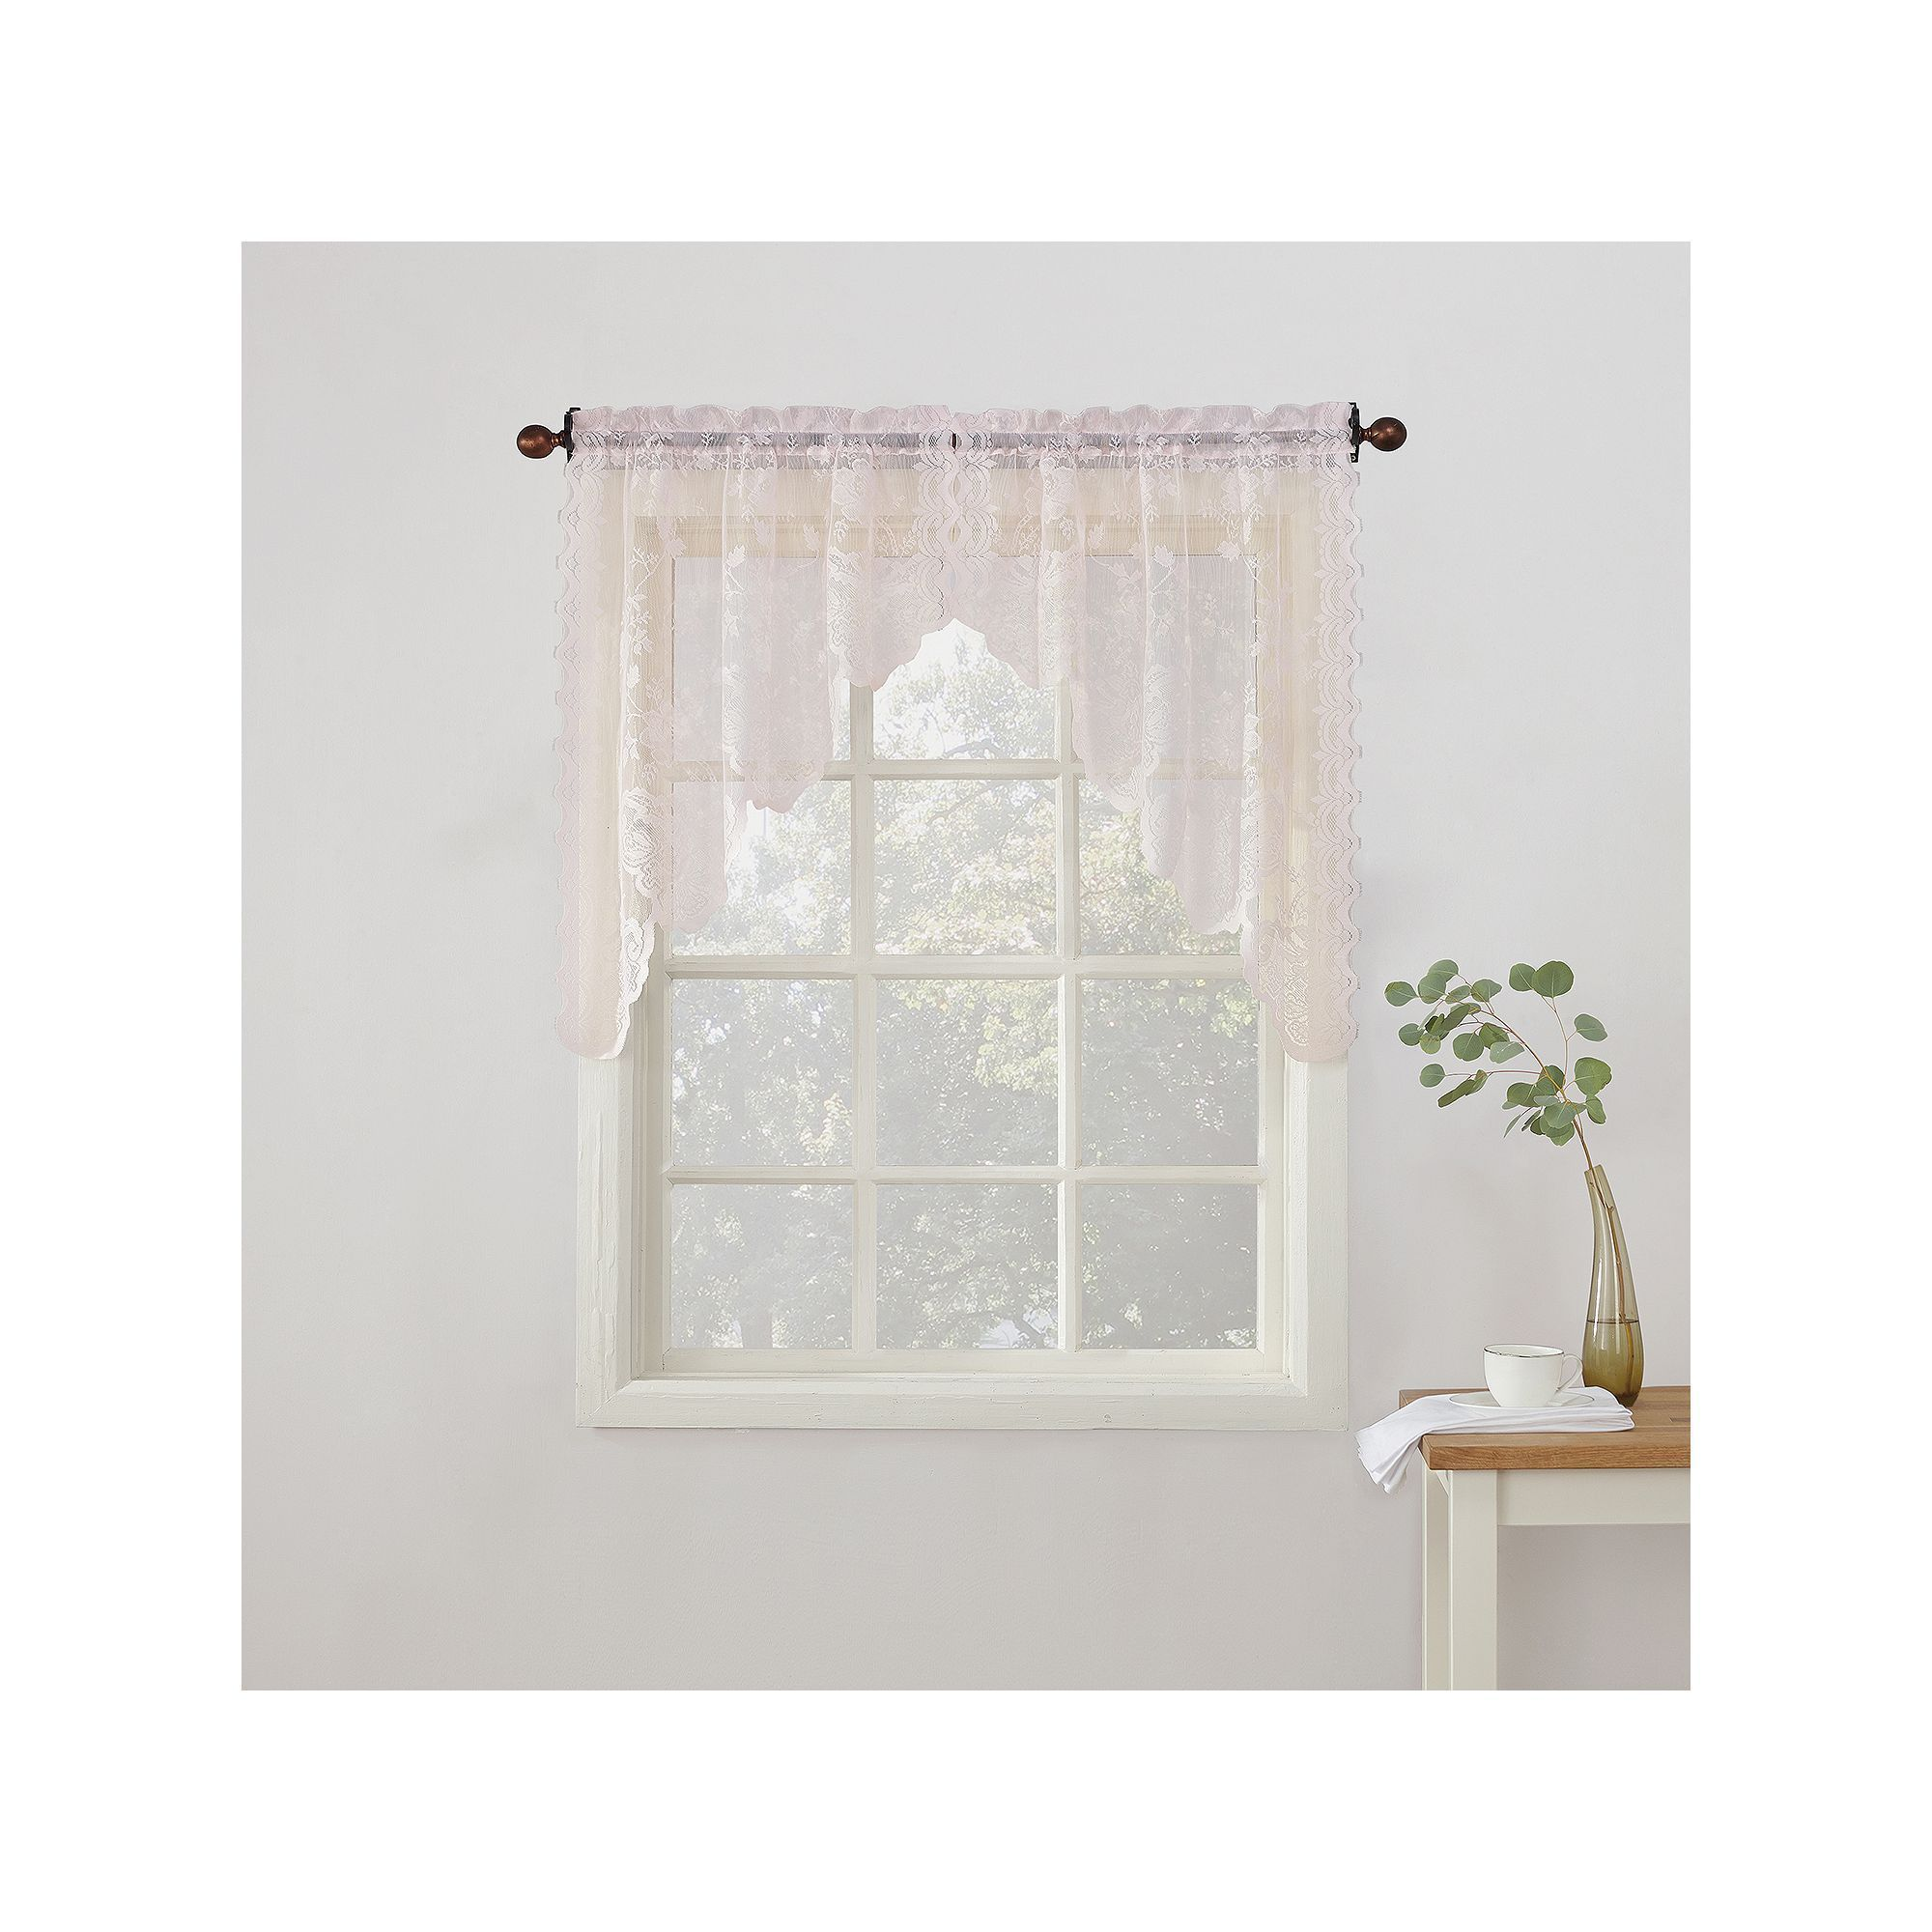 New window coverings 2018  no alison floral lace sheer kitchen curtain swag valance pair